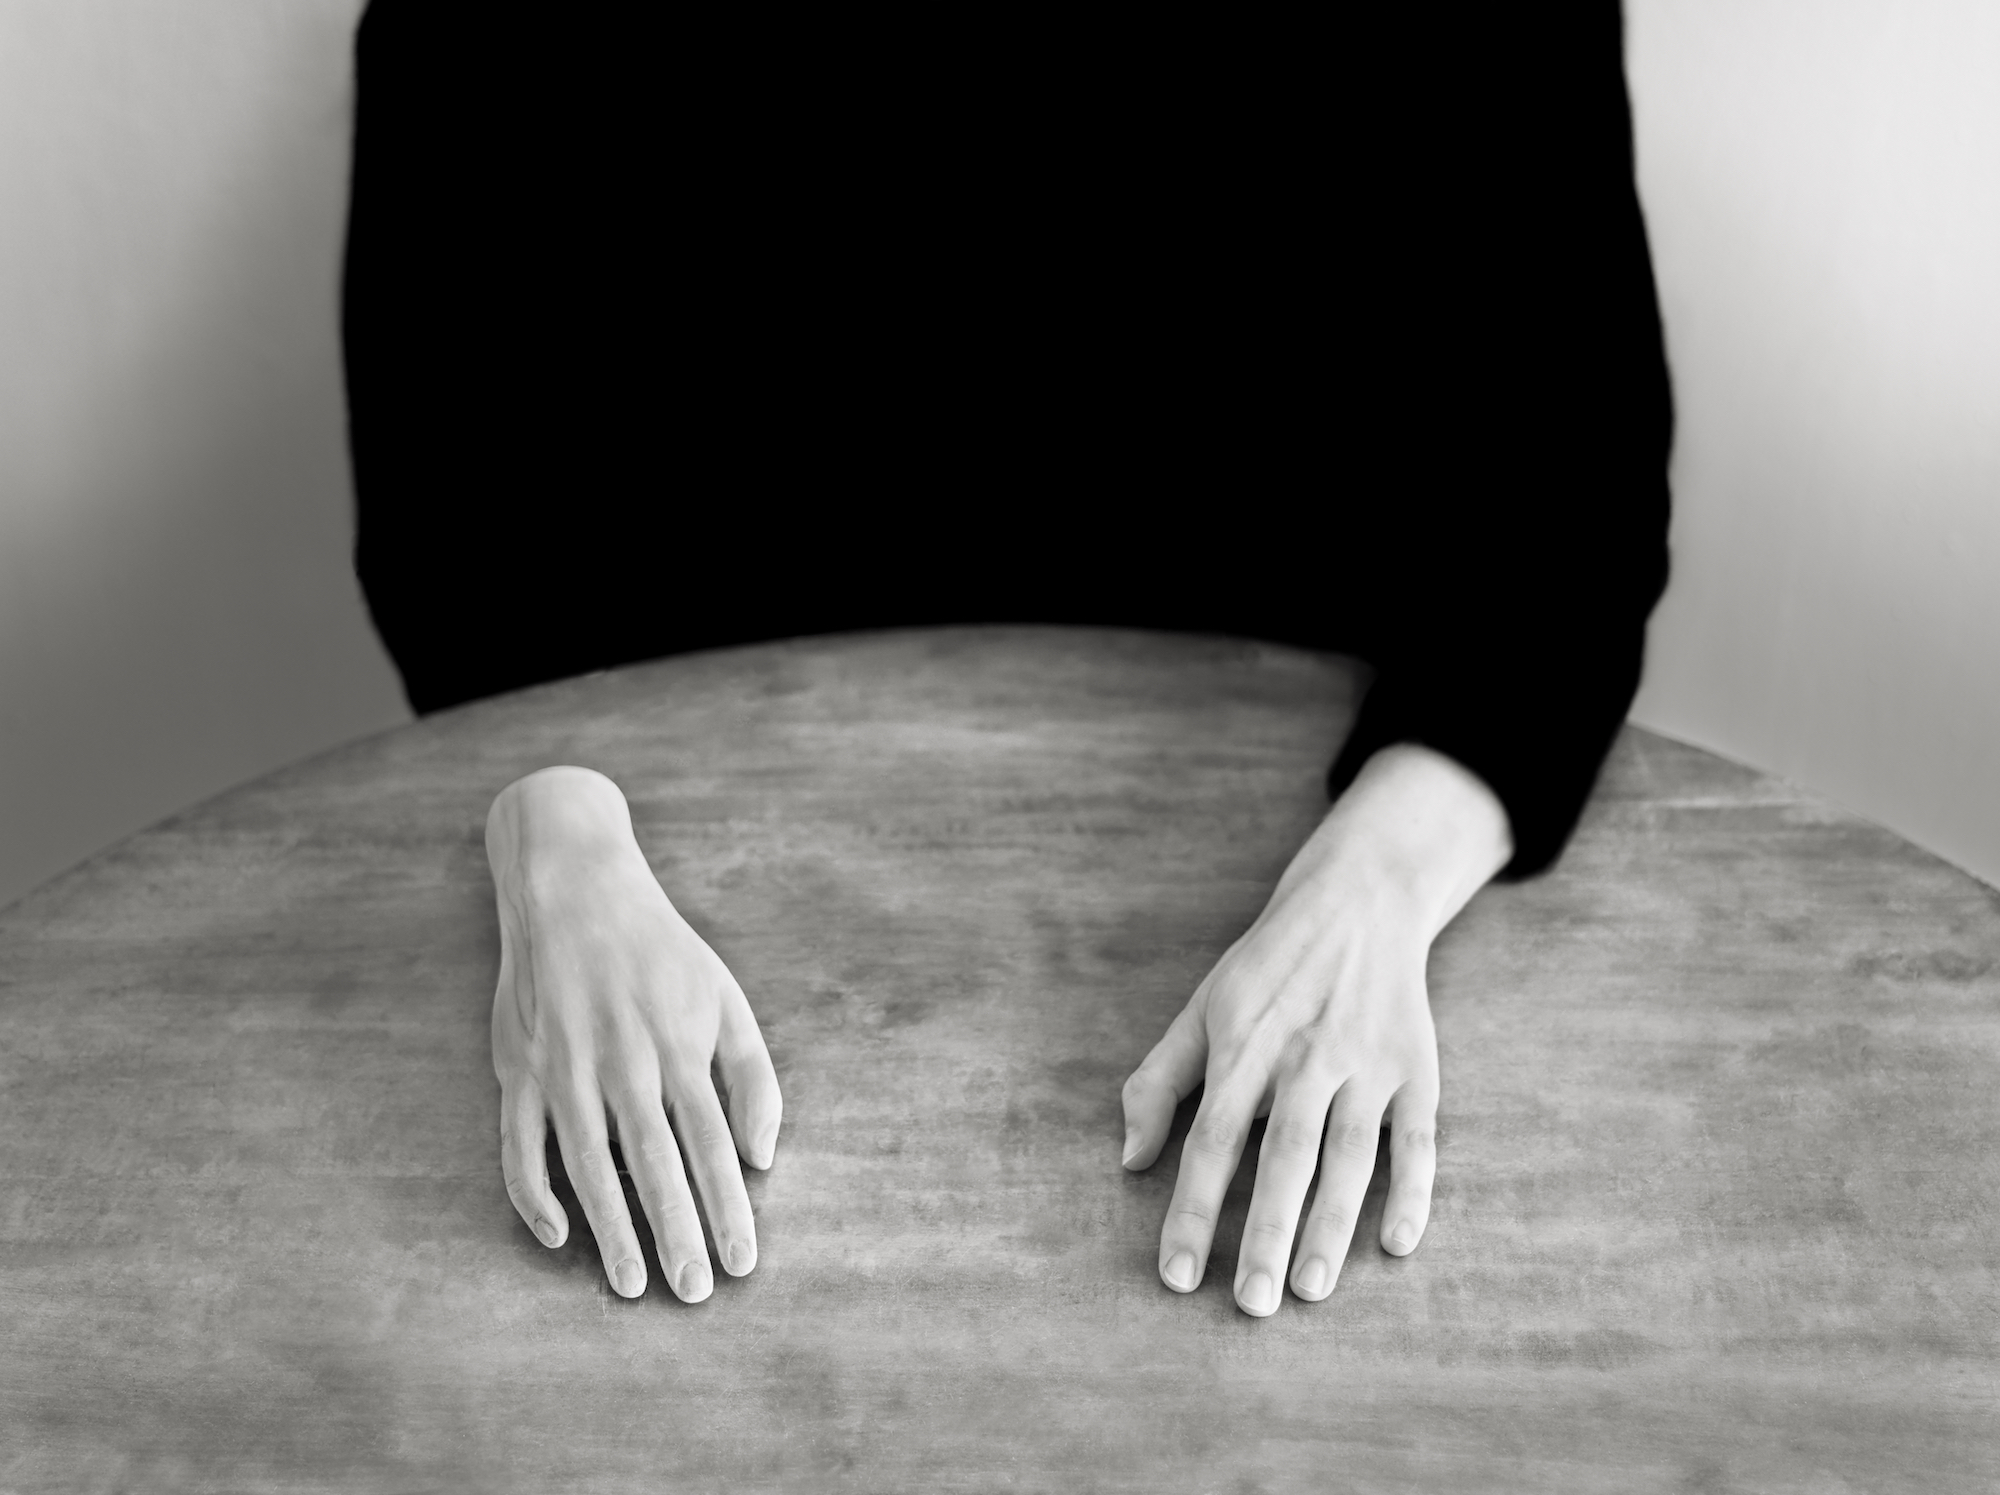 The Other Hand, 2020, Silver gelatin print mounted on aluminium, museum glass, walnut frame, 52,5 x 69 cm, edition of 5